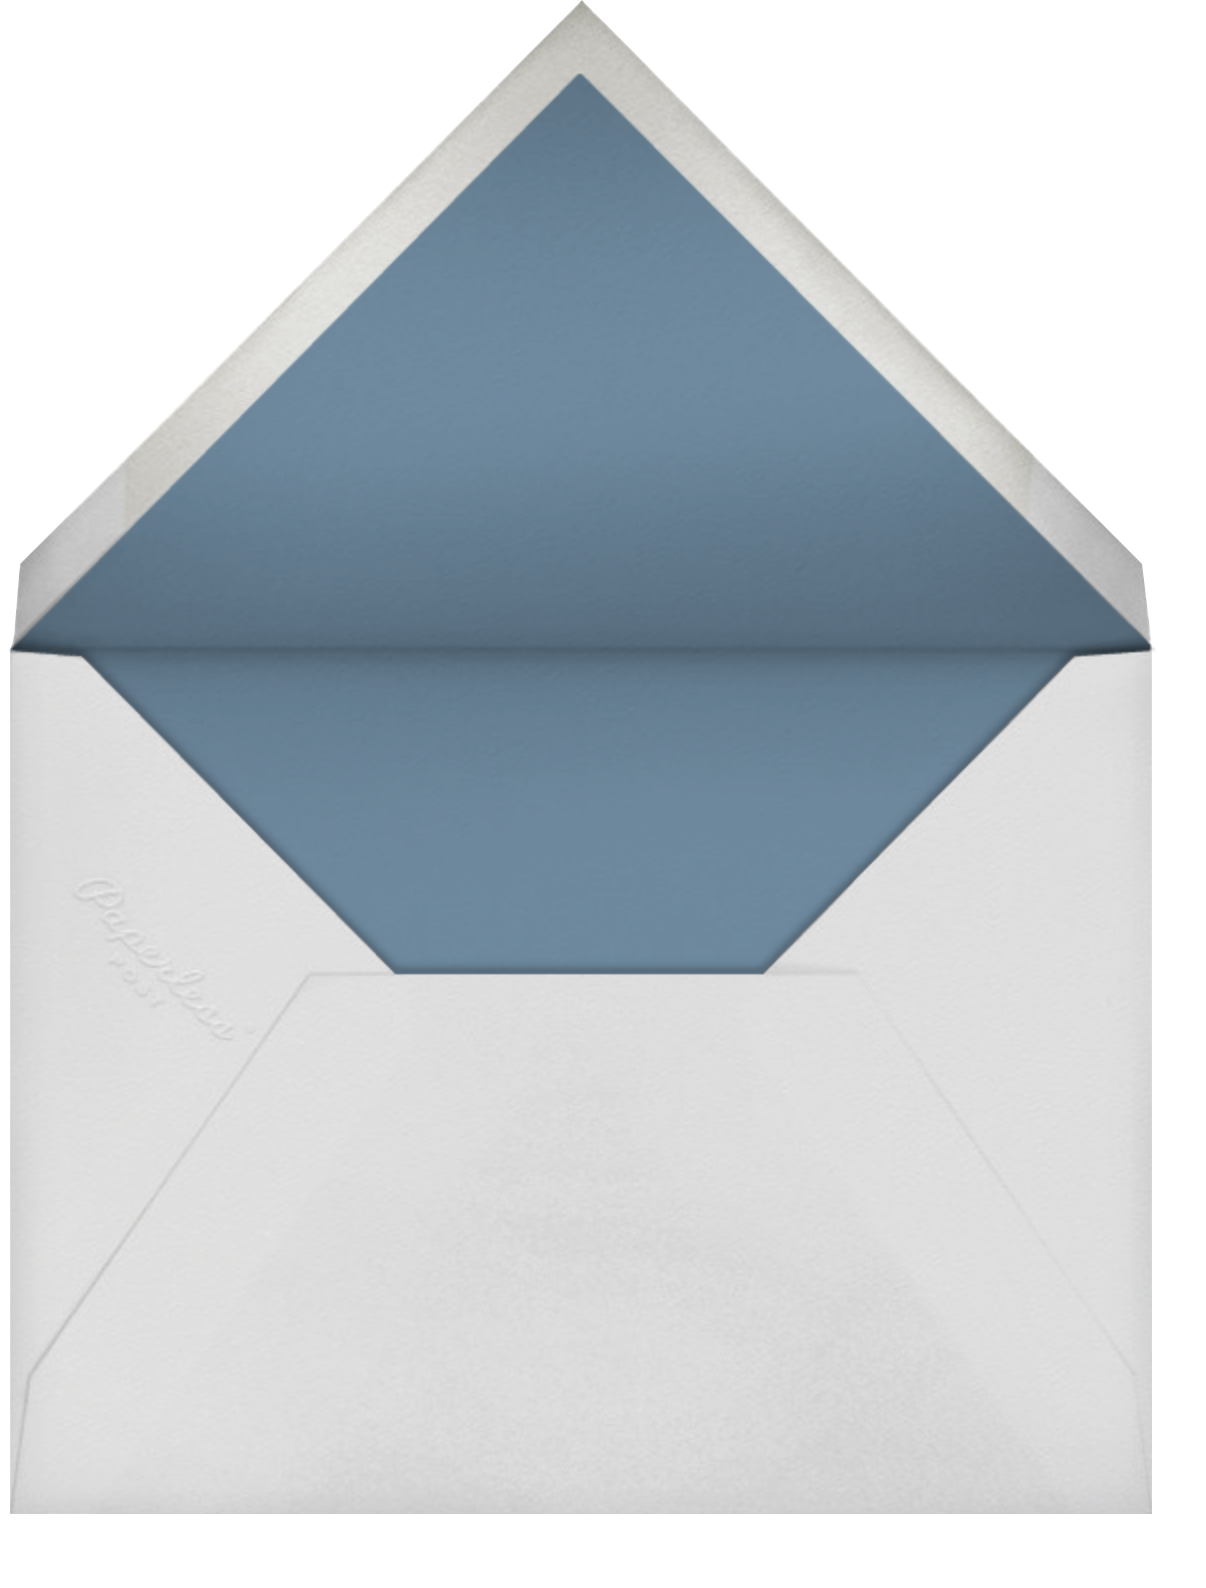 Anthea (Thank You) - French Blue - Crane & Co. - Personalized stationery - envelope back